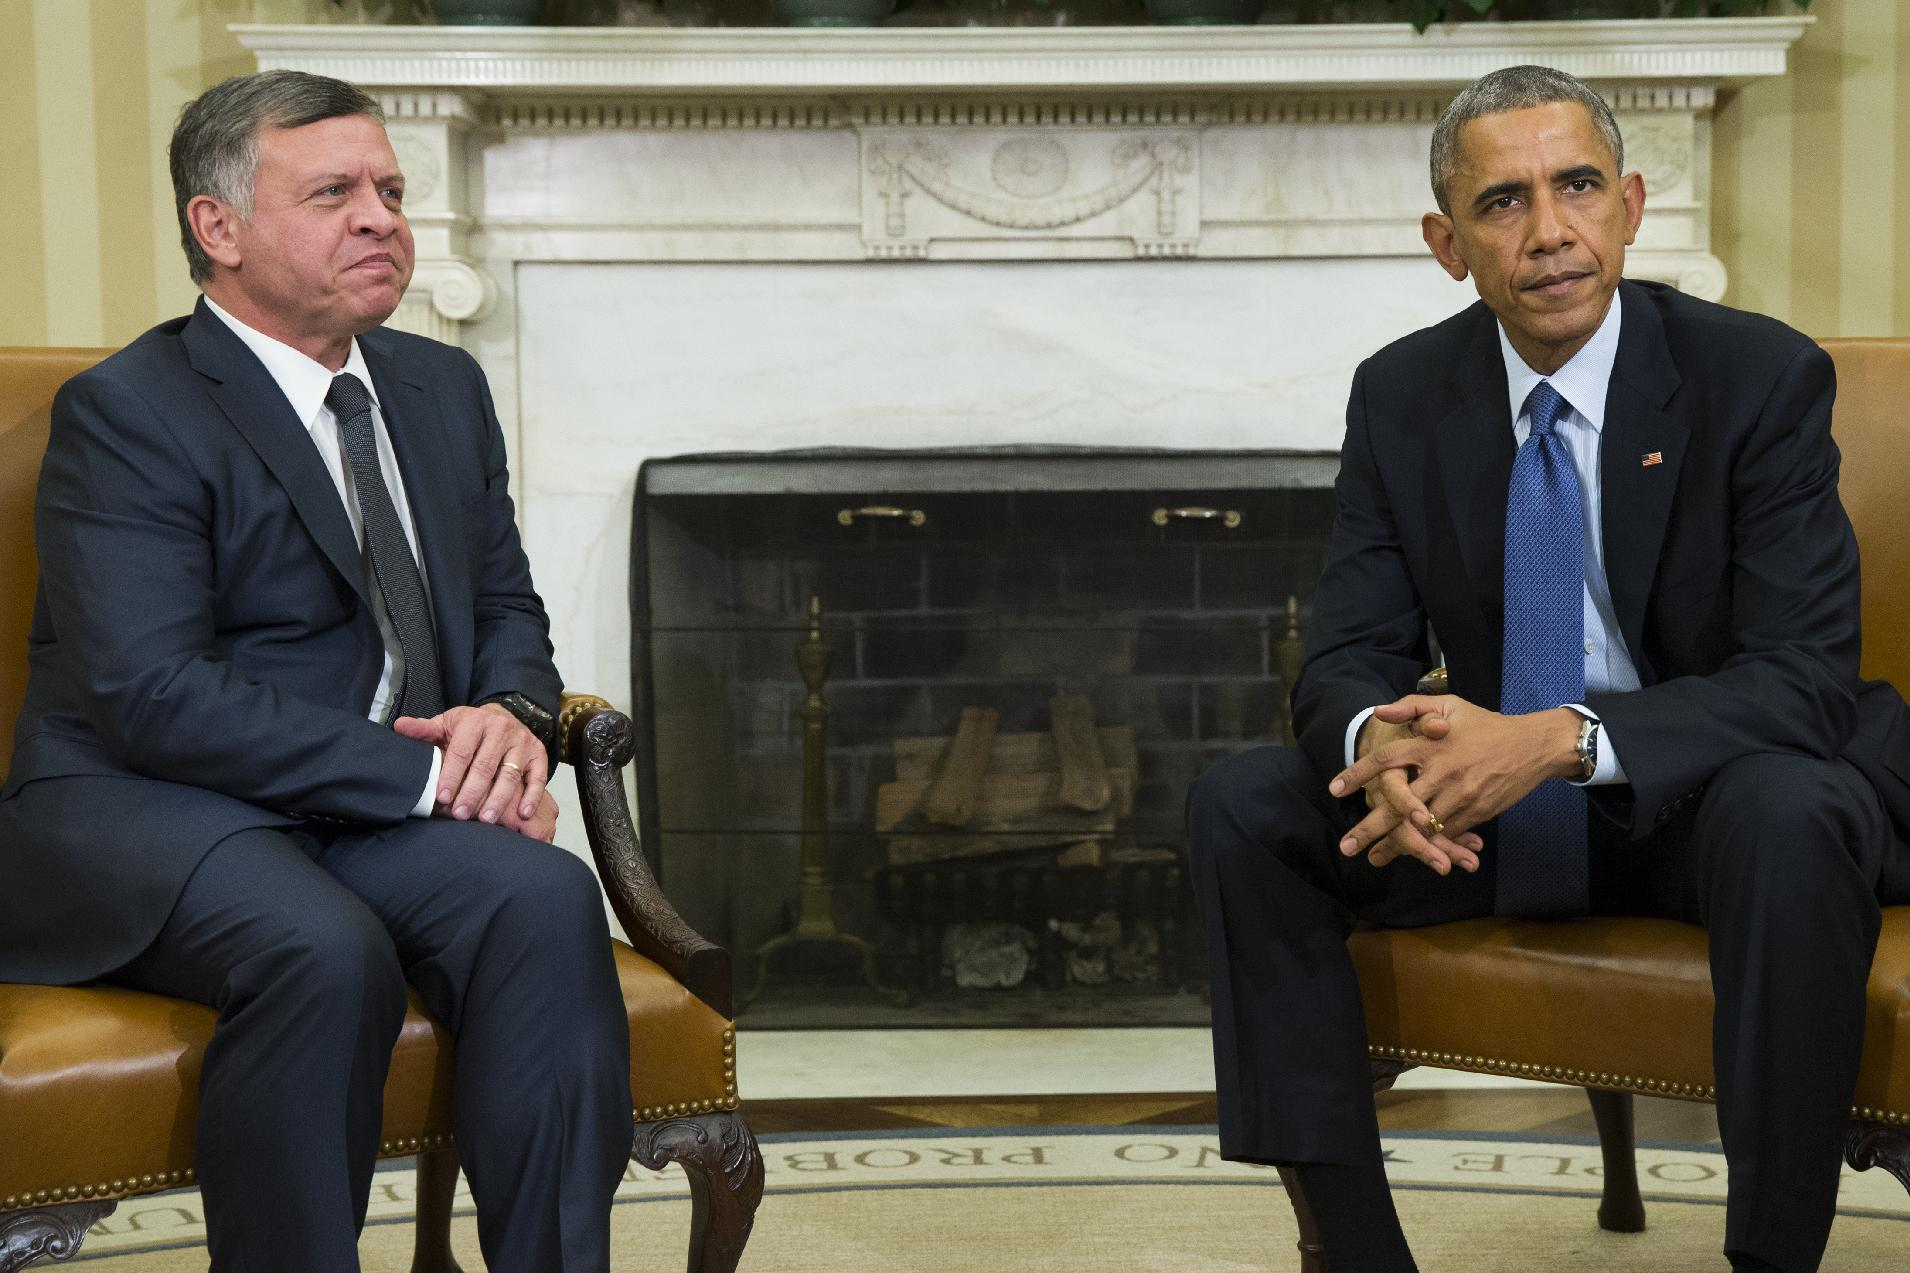 President Barack Obama, right, meets with King Abdullah II of Jordan in the Oval Office of the White House, on Tuesday, Feb. 3, 2015, in Washington. The meeting comes after Jordanian Air Force pilot First Lt. Moaz al-Kasasbeh was executed by the Islamic State group. (AP Photo/Evan Vucci)